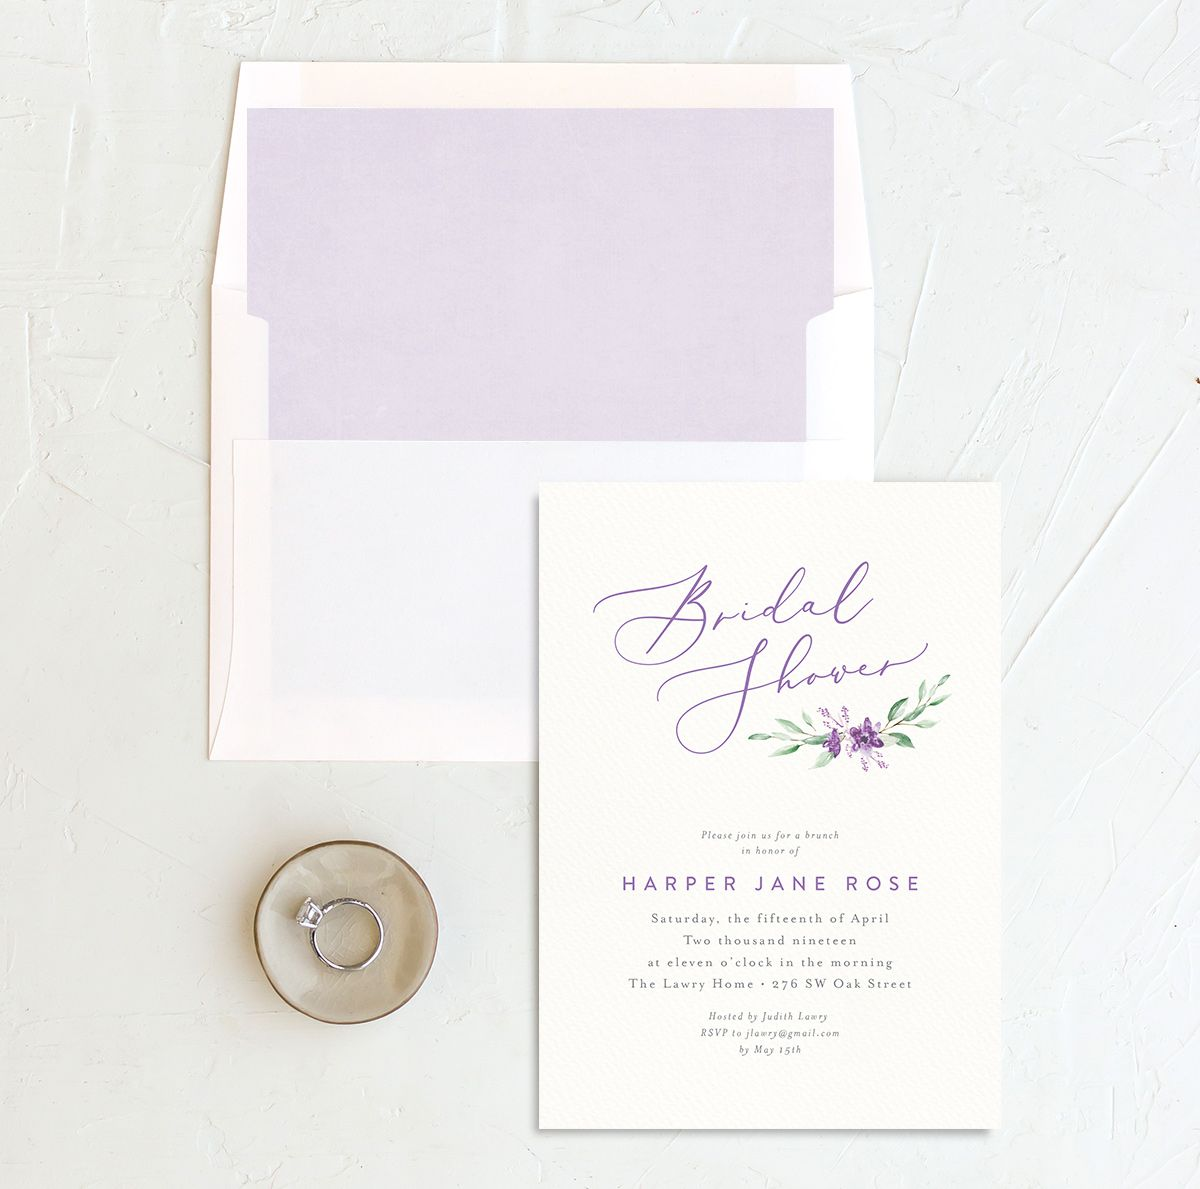 watercolor crest bridal shower invitation in purple with envelope liner